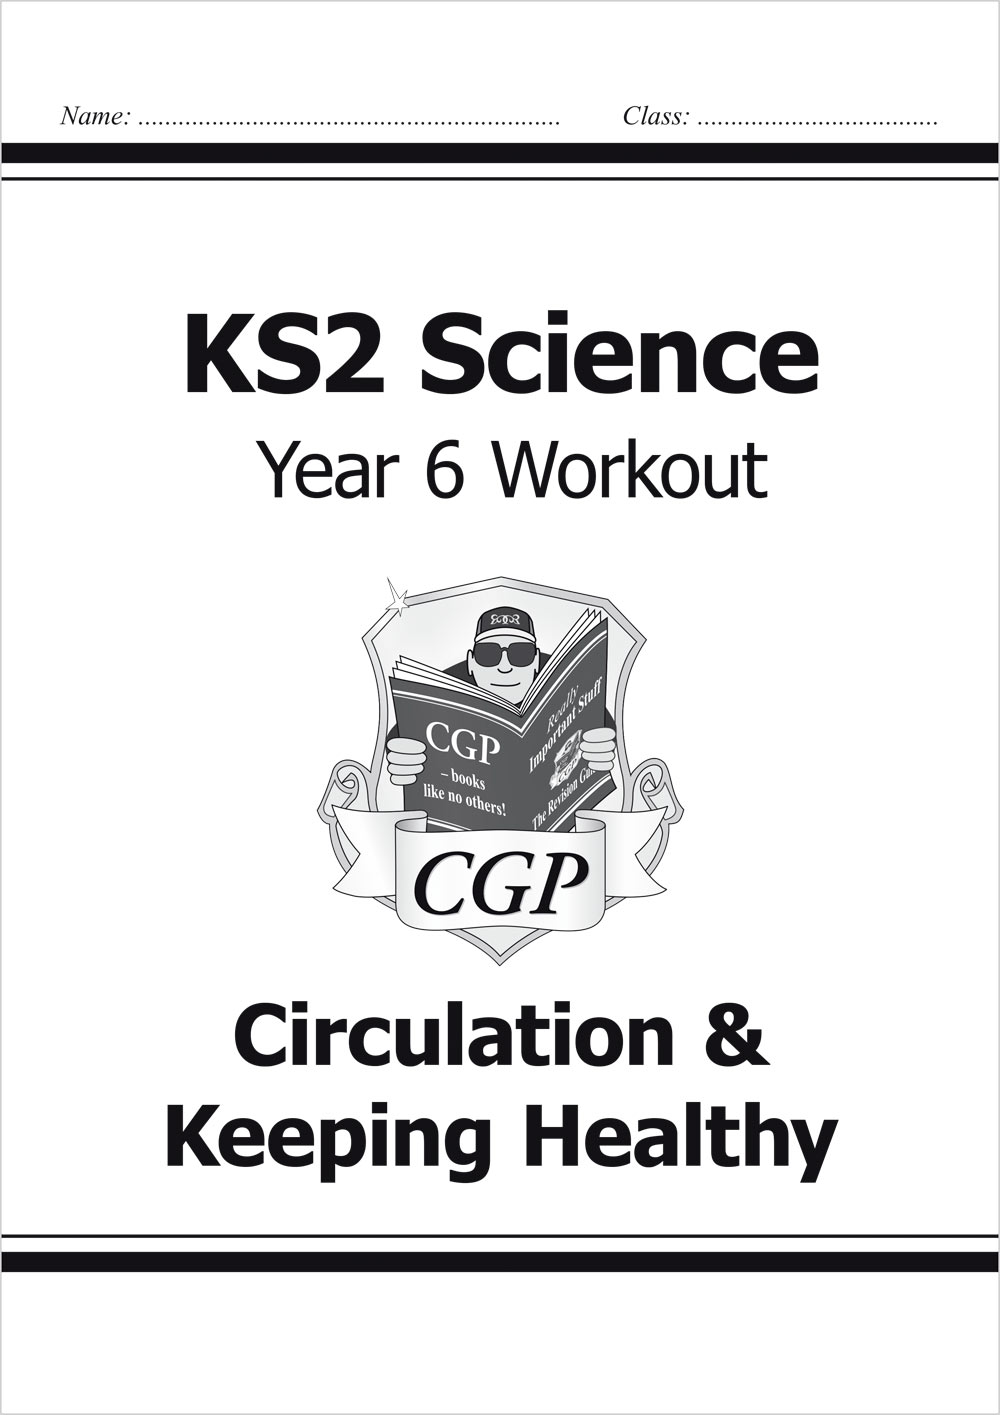 S6A22 - KS2 Science Year Six Workout: Circulation & Keeping Healthy